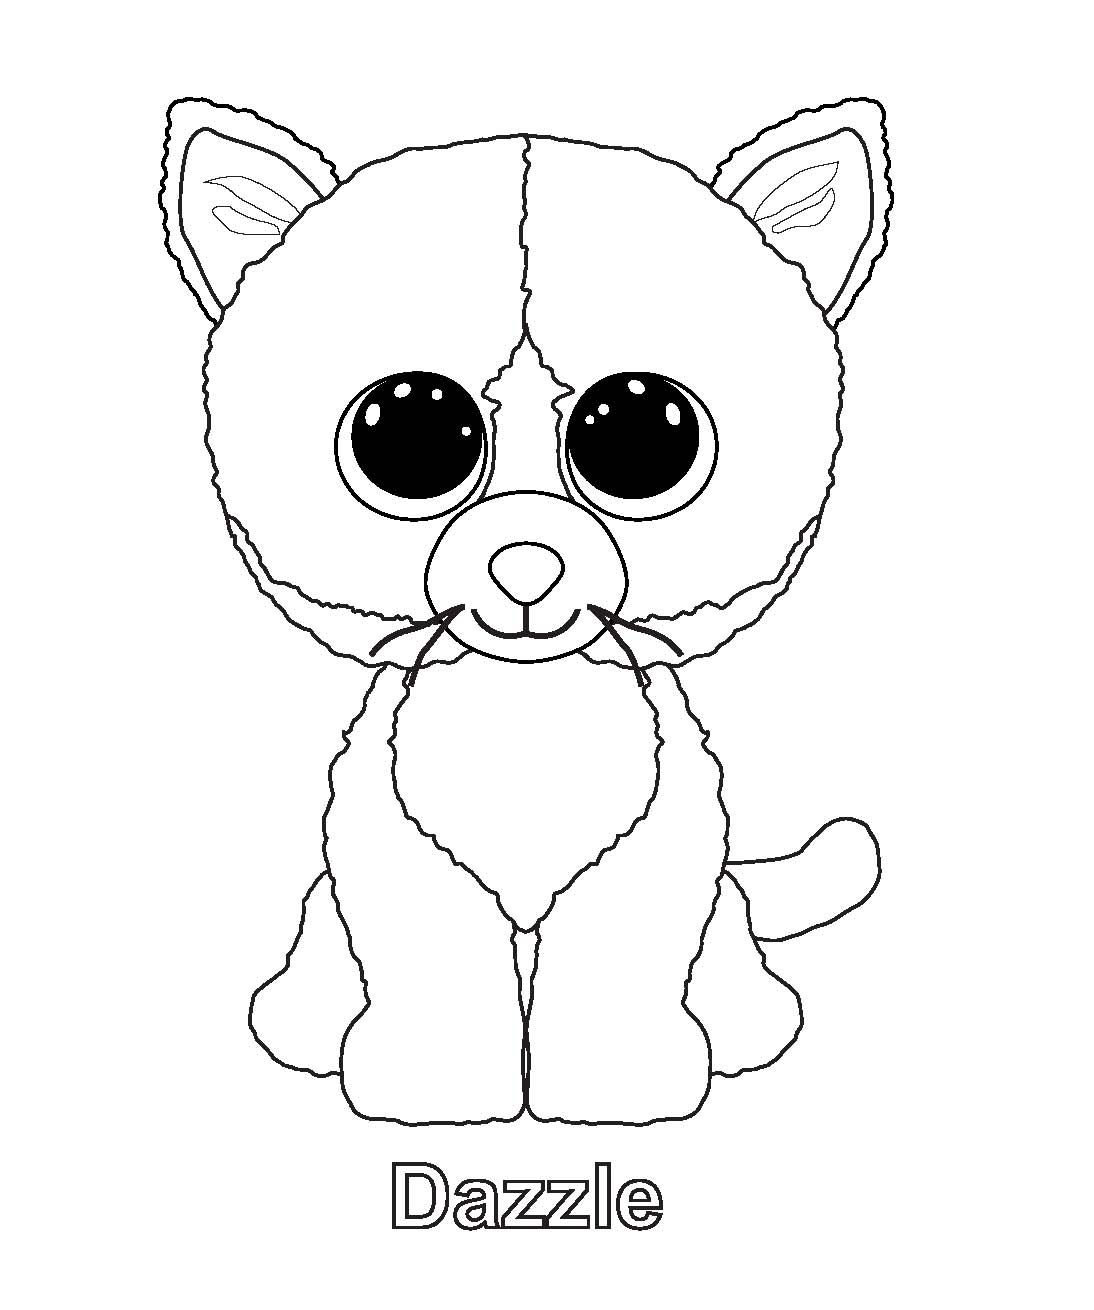 Beanie Boo Coloring Pages Coloring Rocks Beanie Boo Birthdays Cat Coloring Page Animal Coloring Pages